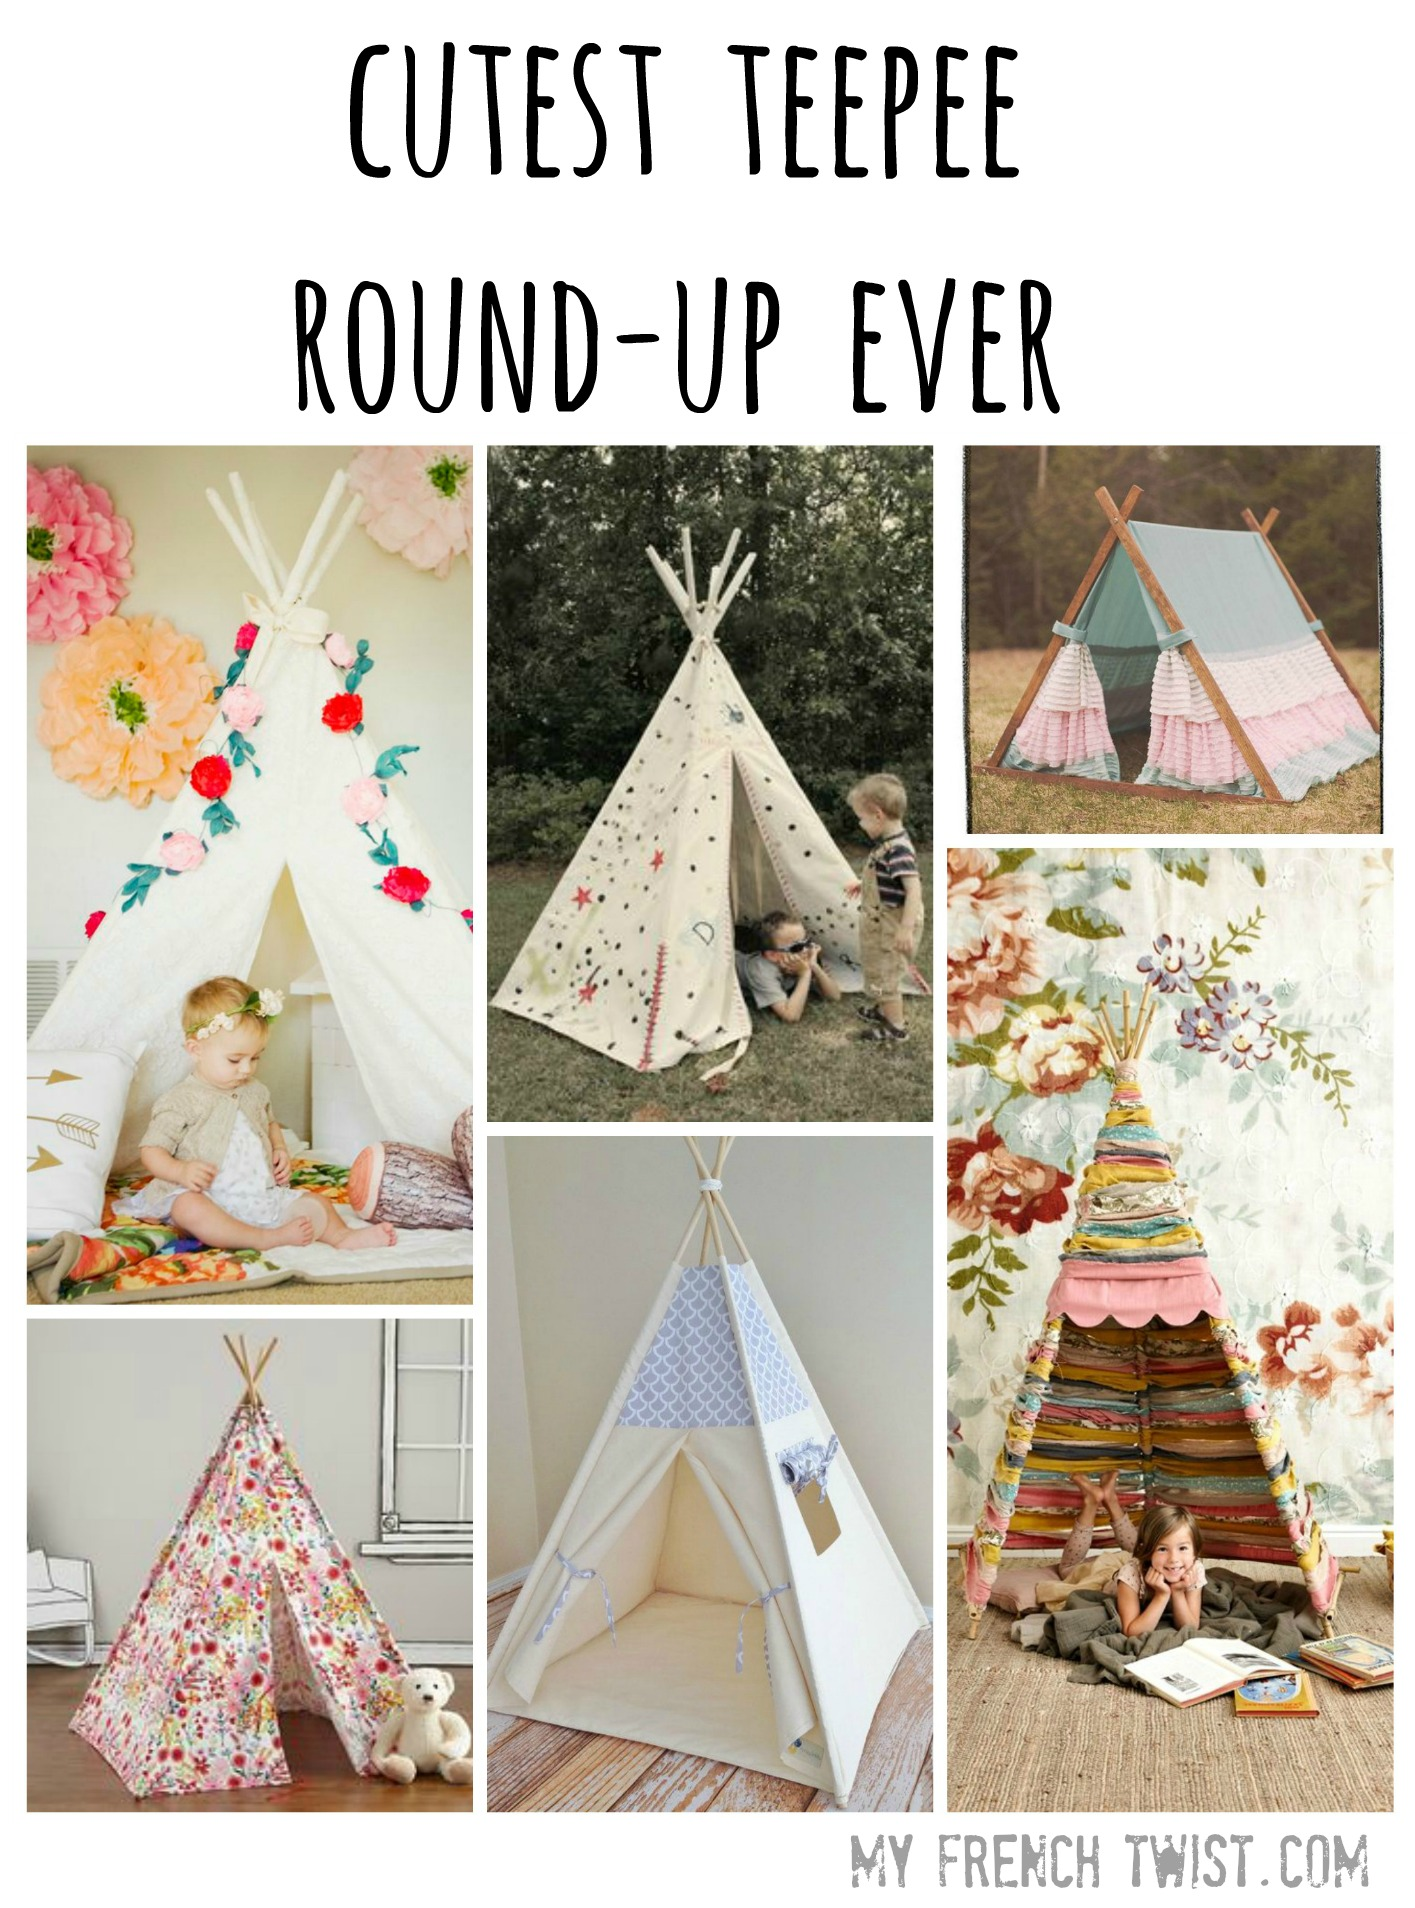 cutest teepee roundup ever - my french twist